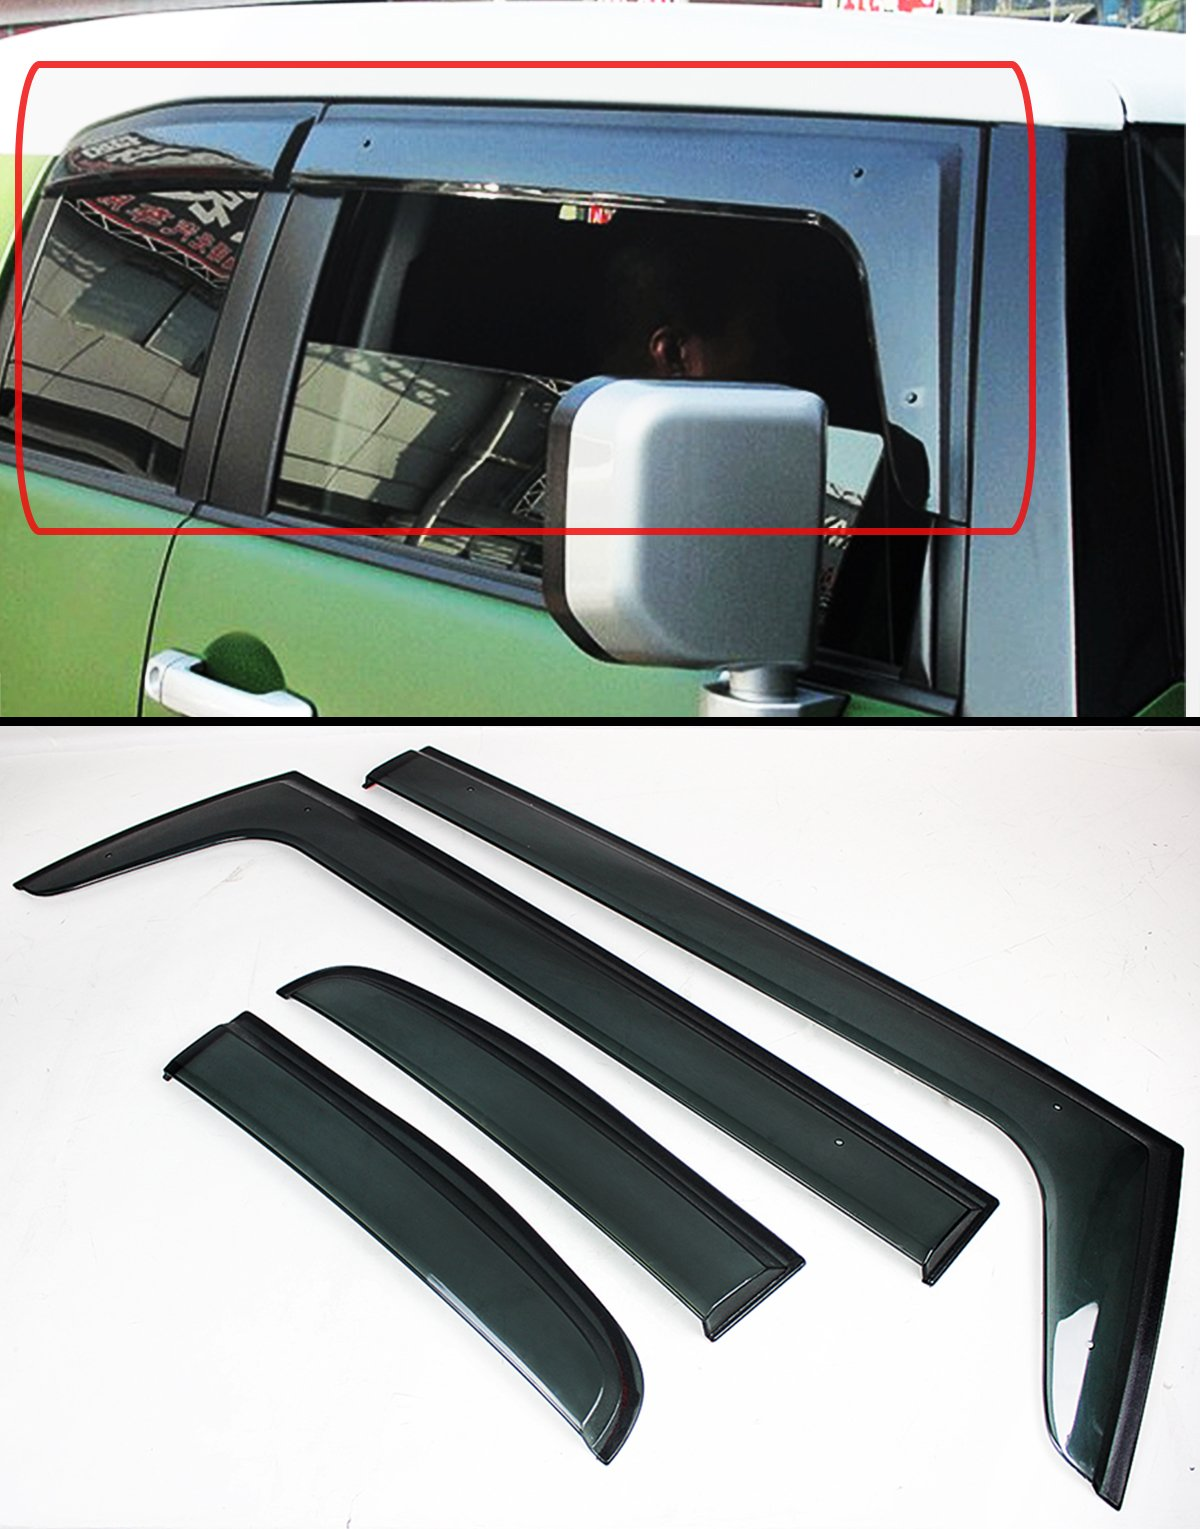 Cuztom Tuning Premium Clip-on Offroad Smoke Tinted Rain Guard Window Visor Compatible with for 2007-2014 Toyota FJ Cruiser